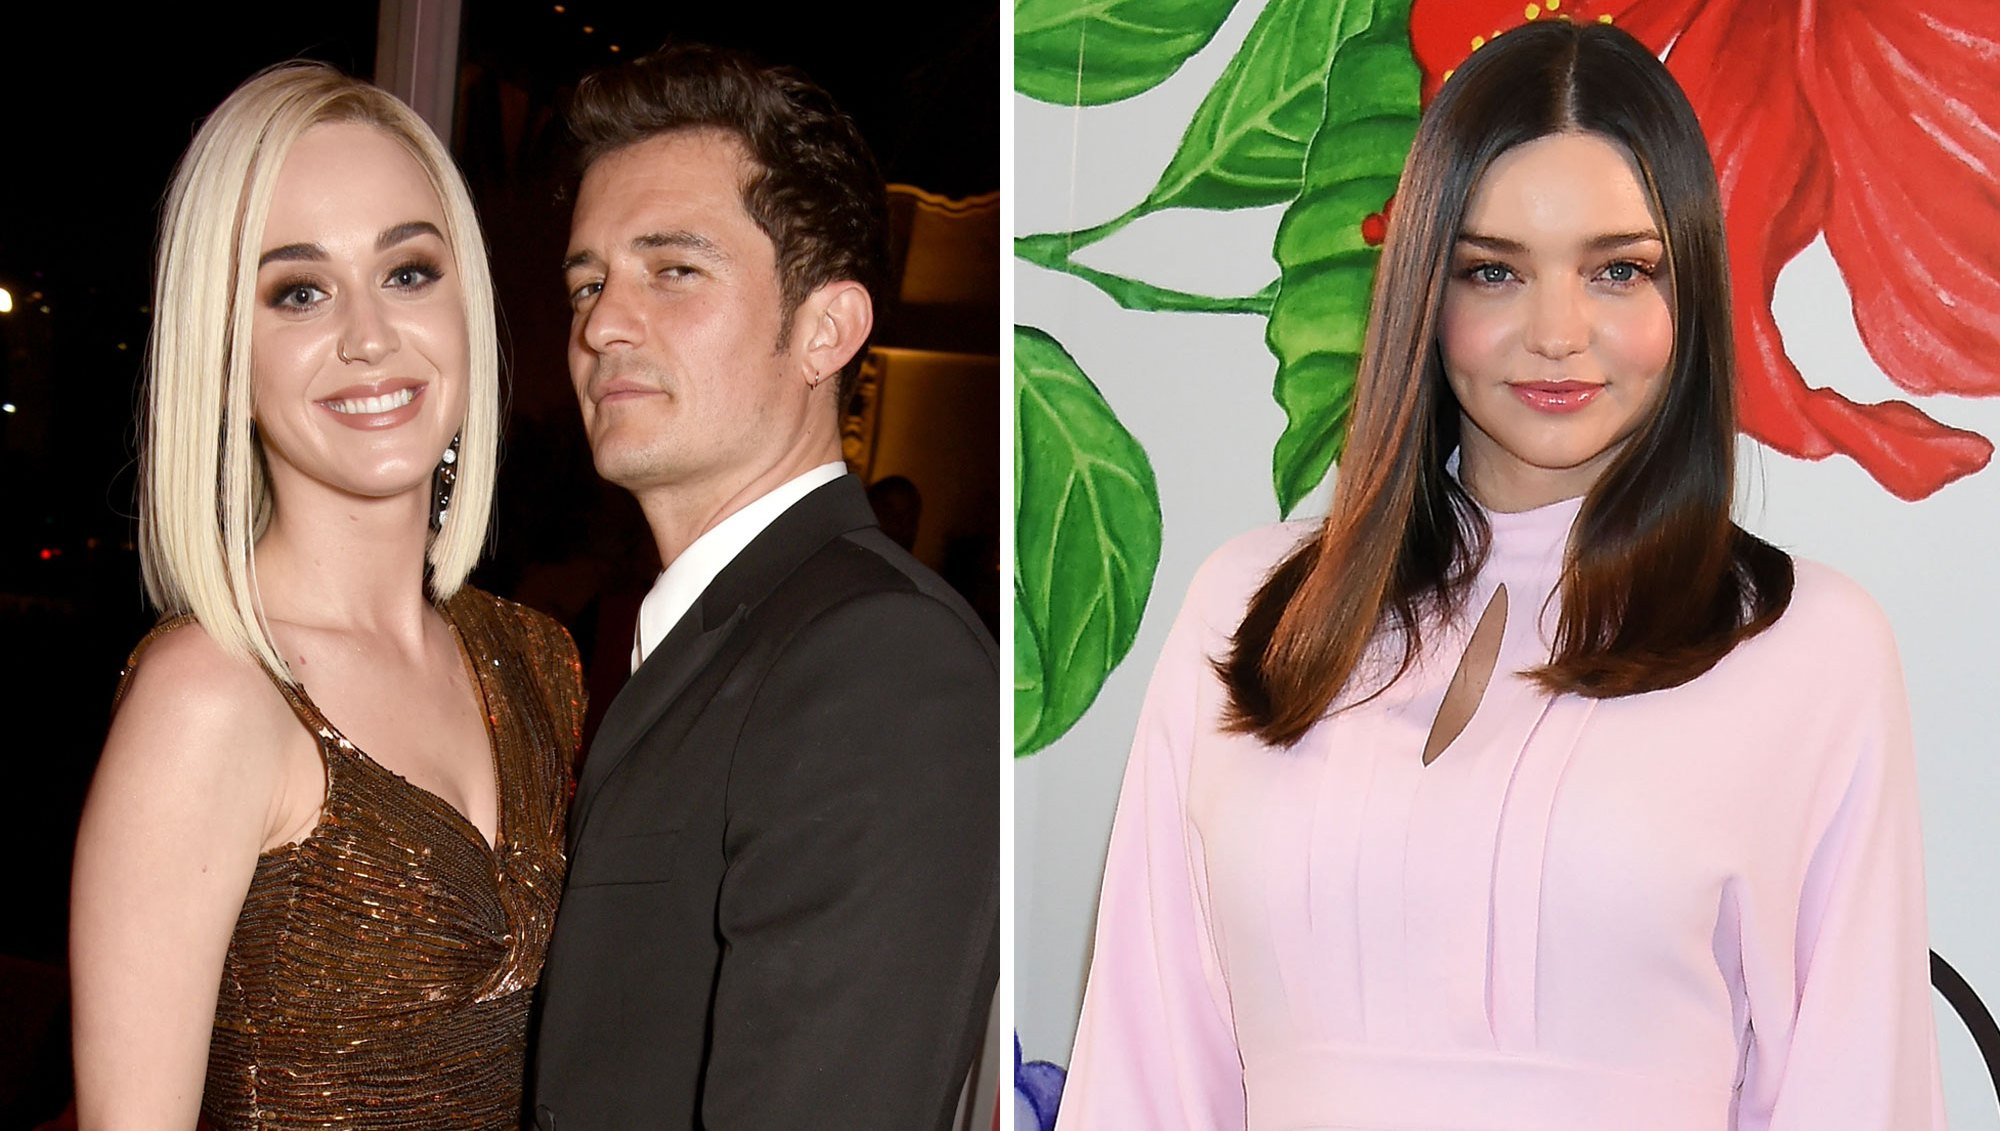 Orlando Bloom Gave Katy Perry and Ex-Wife Miranda Kerr Similar Engagement Rings